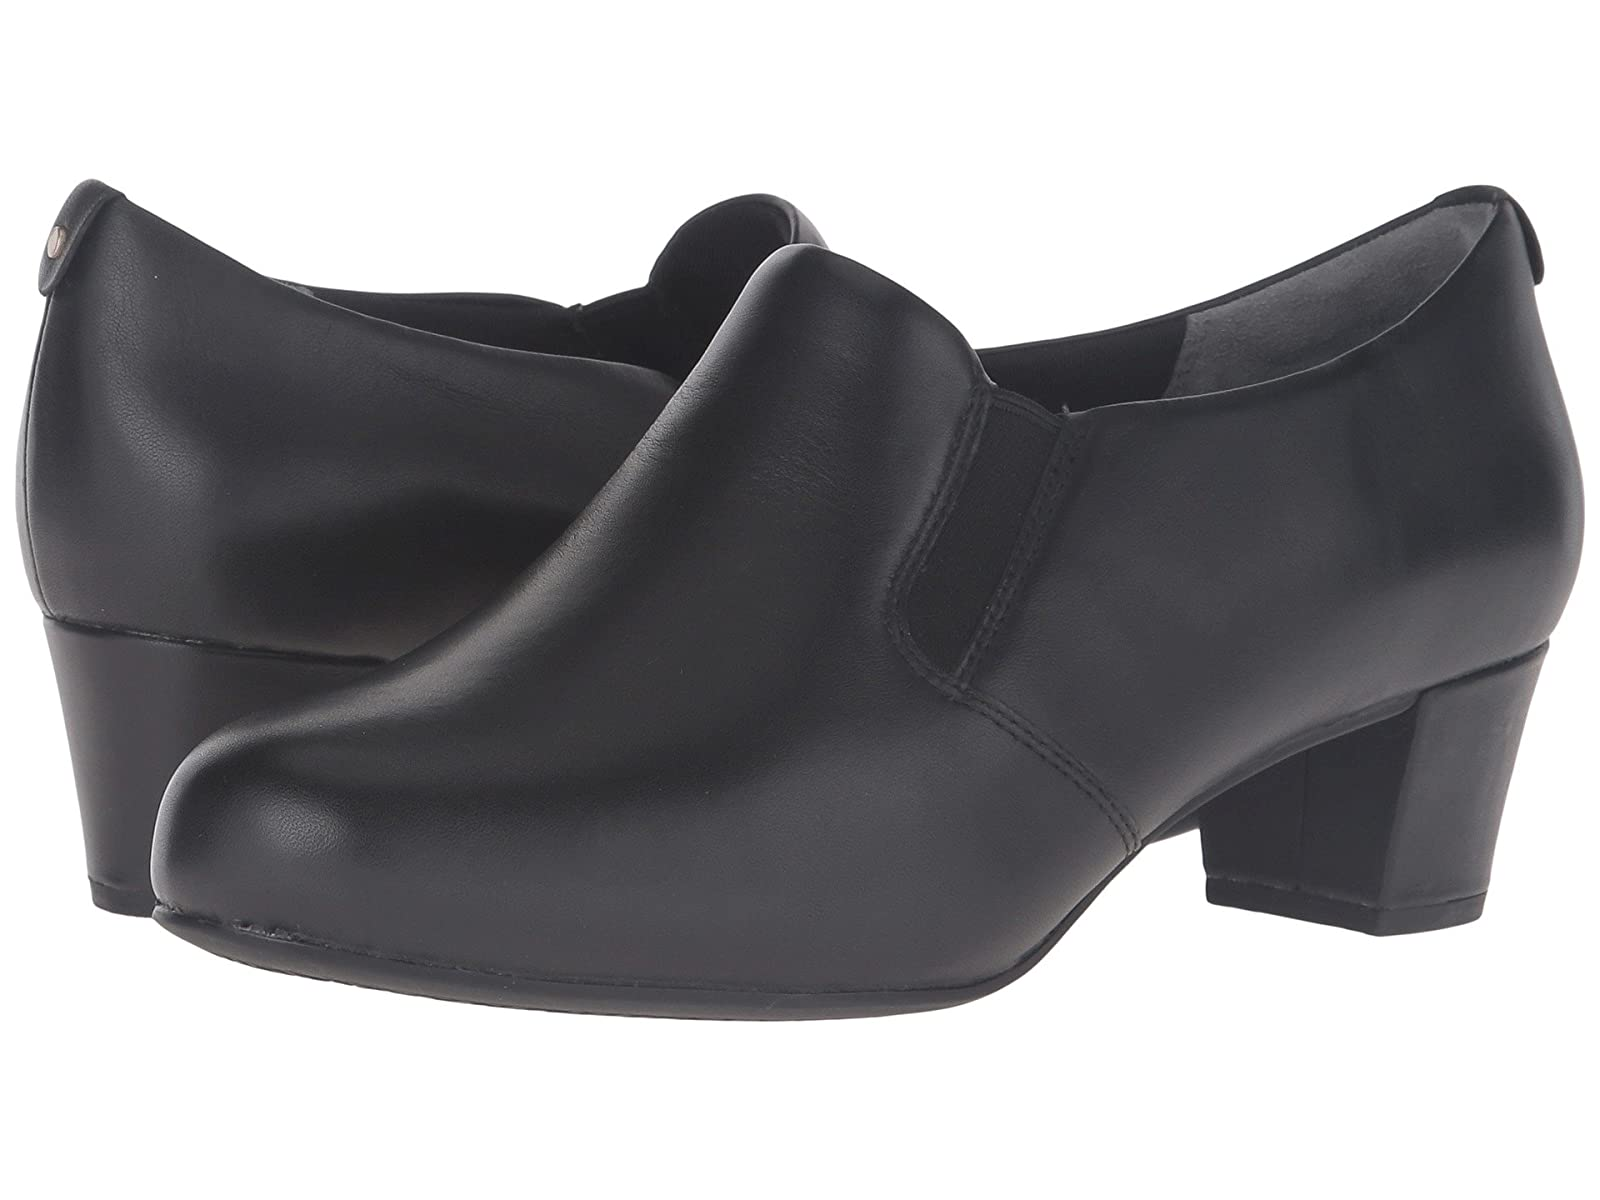 Rockport Total Motion ChereneCheap and distinctive eye-catching shoes